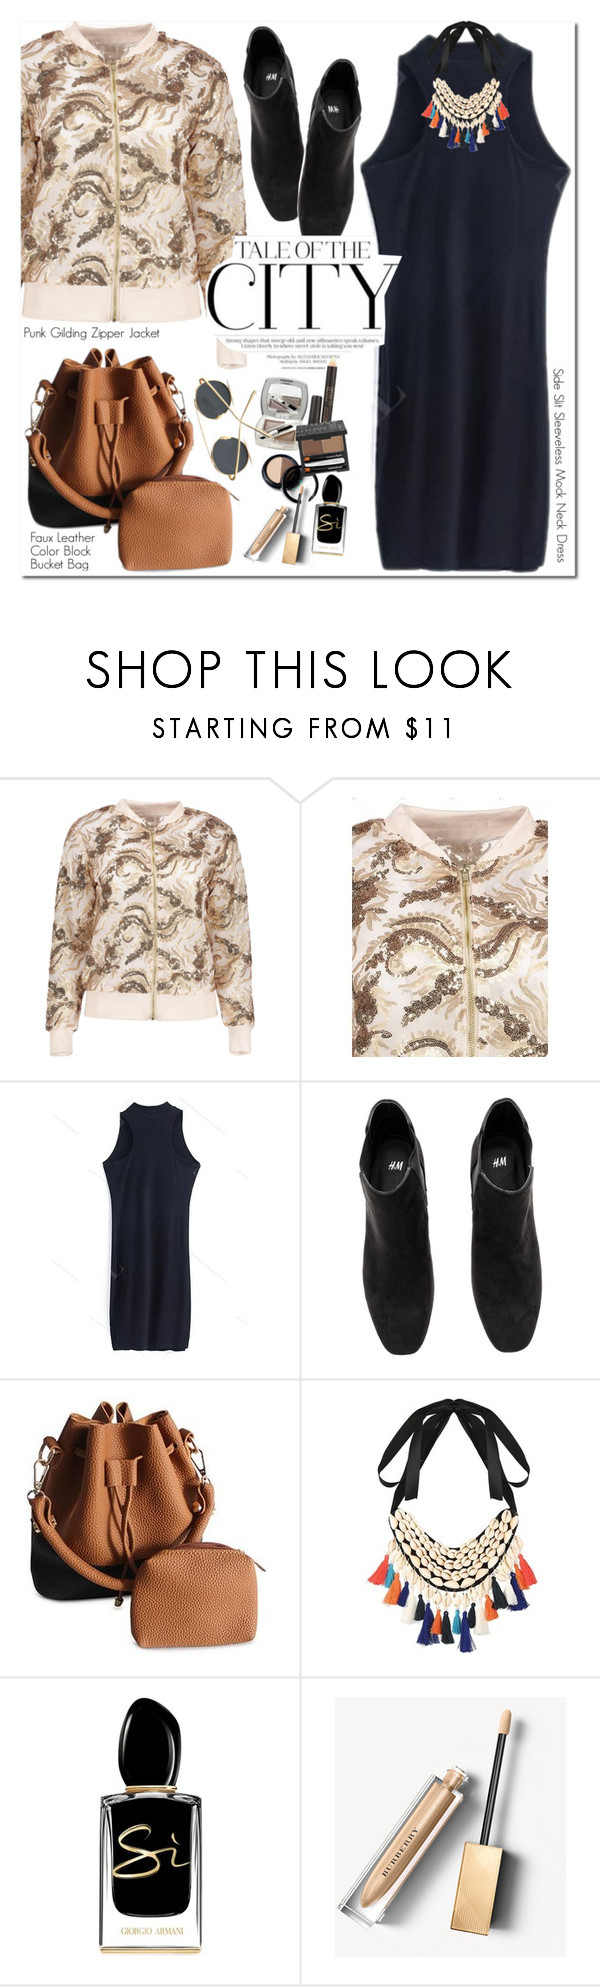 """Punk Gilding Zipper Jacket"" by oshint ❤ liked on Polyvore featuring Giorgio Armani, Burberry, awesome, amazing, fabulous, wonderful and zaful"